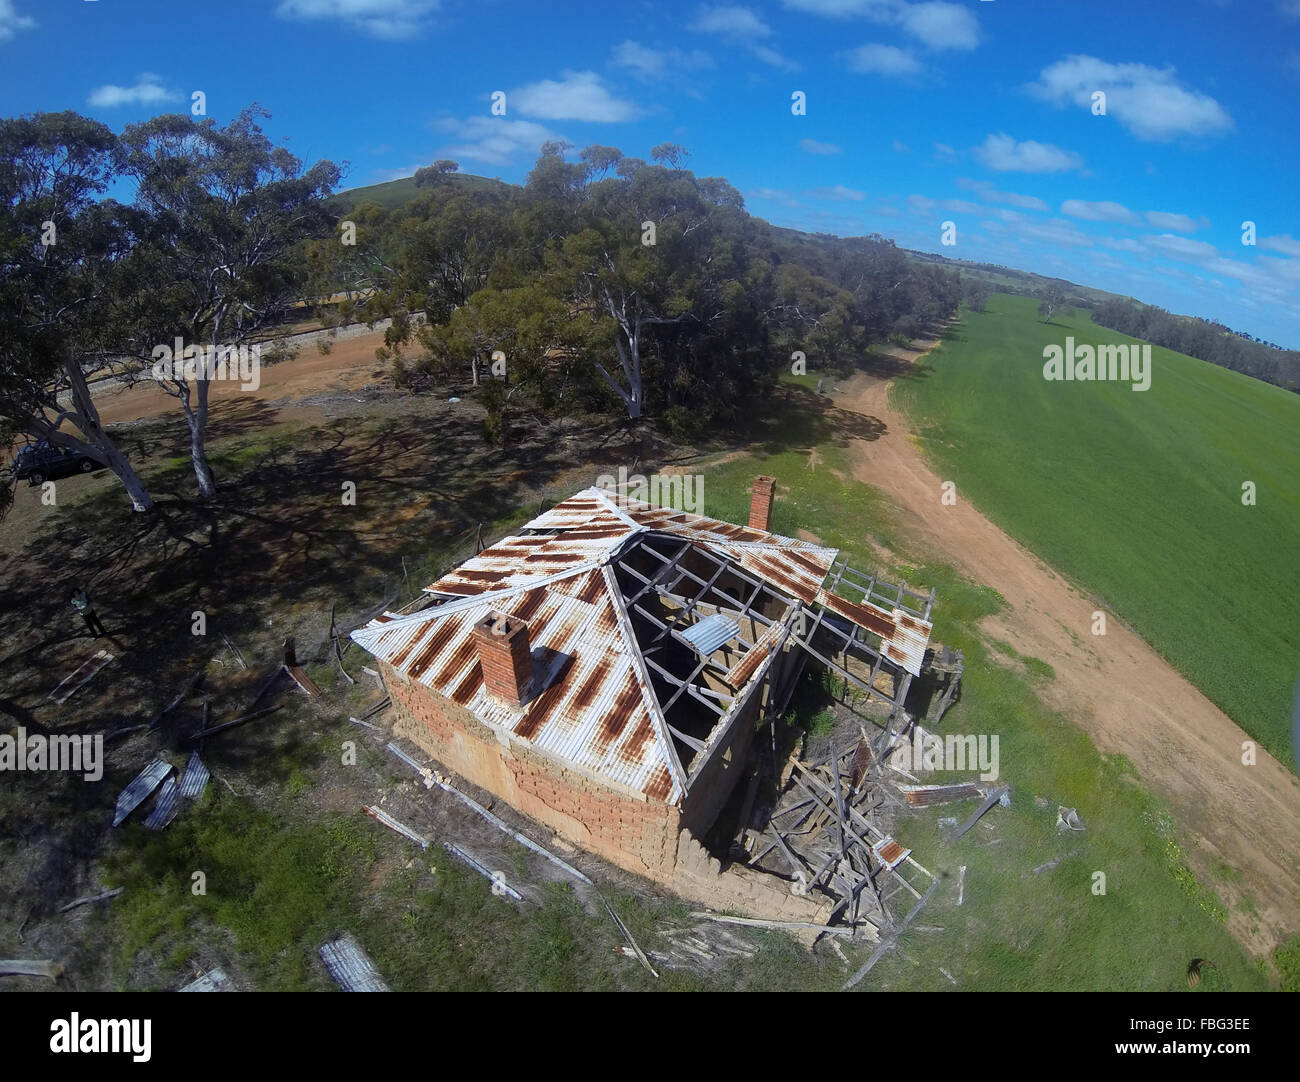 Aerial view of dilapidated historic cottage next to green wheat field, near Moora, Wheatbelt region, Western Australia Stock Photo